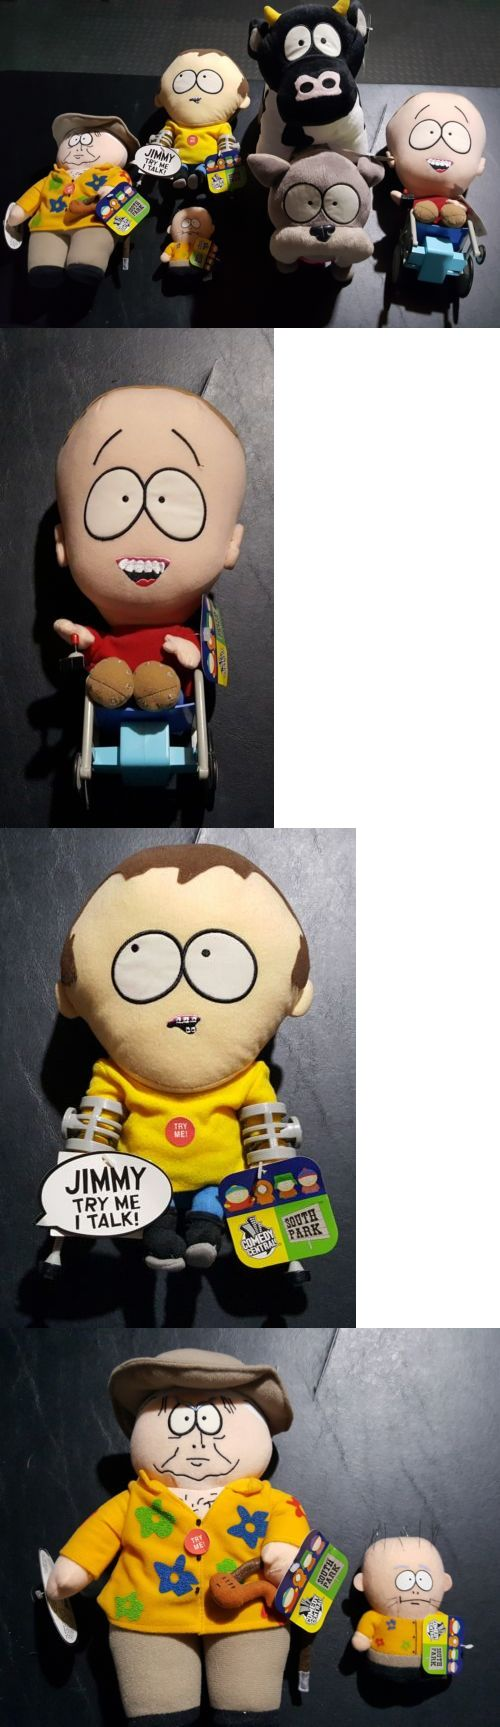 South Park 20918: Lot Of 5 South Park Plush, Timmy, Jimmy, Cow, Sparky, Mephesto And Kevin Nwt -> BUY IT NOW ONLY: $50 on eBay!